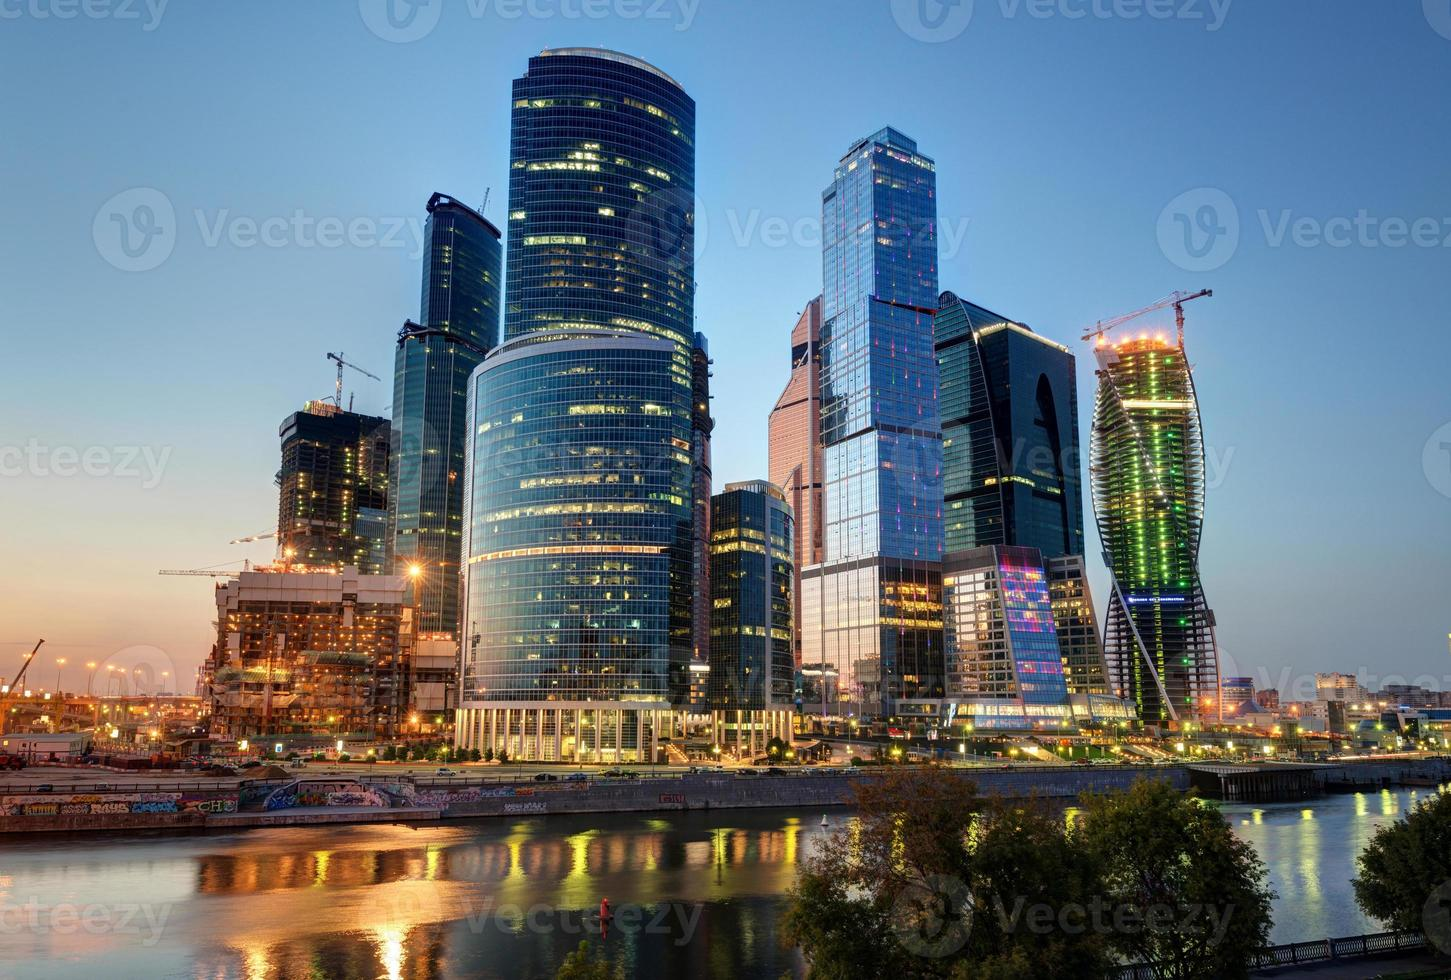 Moscow-city (Moscow International Business Center) at night photo